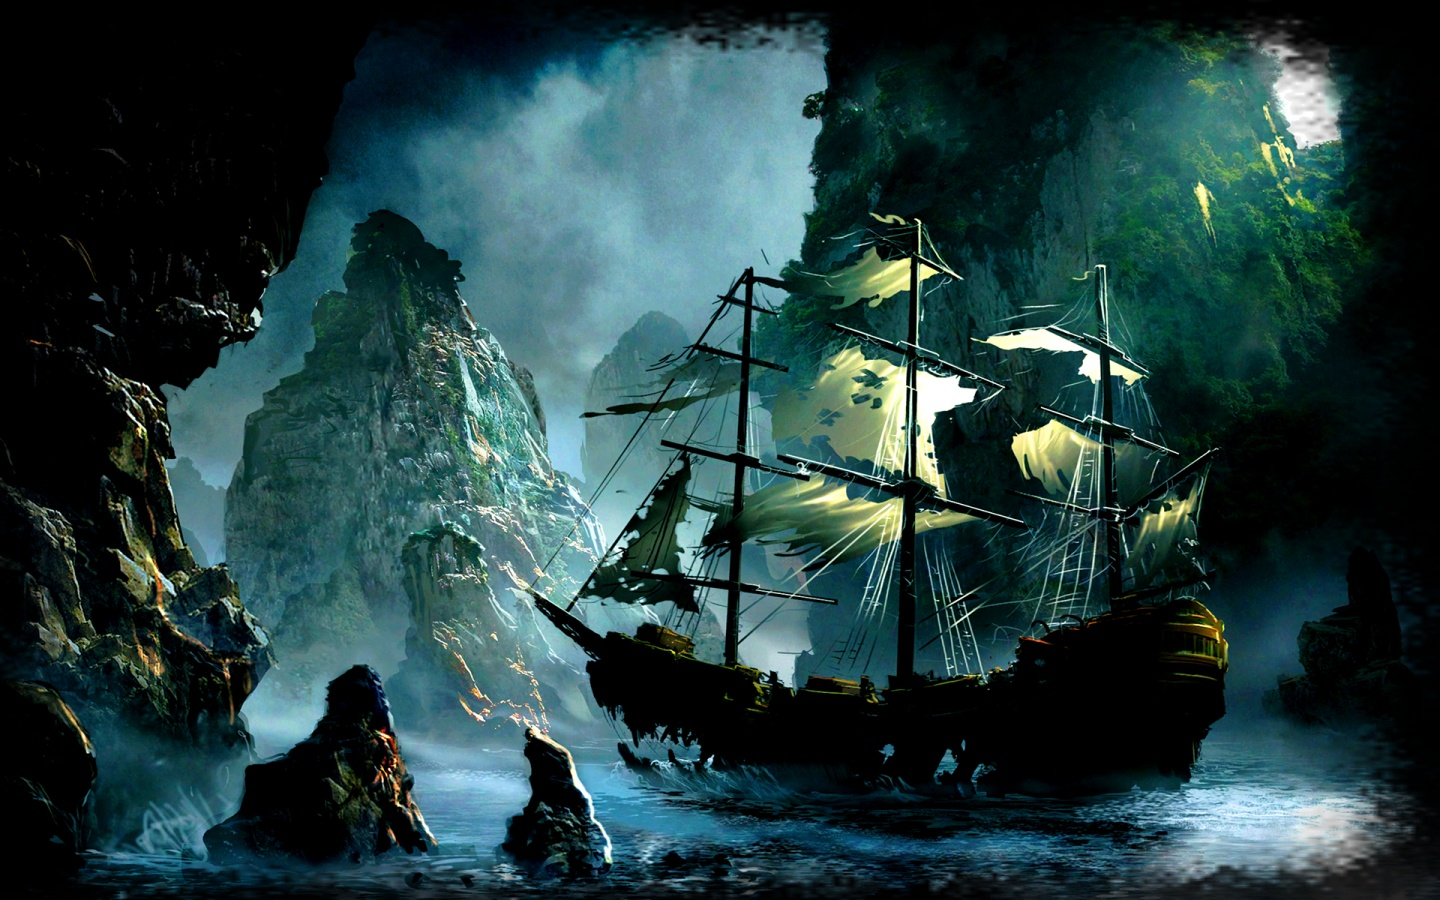 Tags sea ship rocks fantasy world imaginary pirate ship ghost ship 1440x900